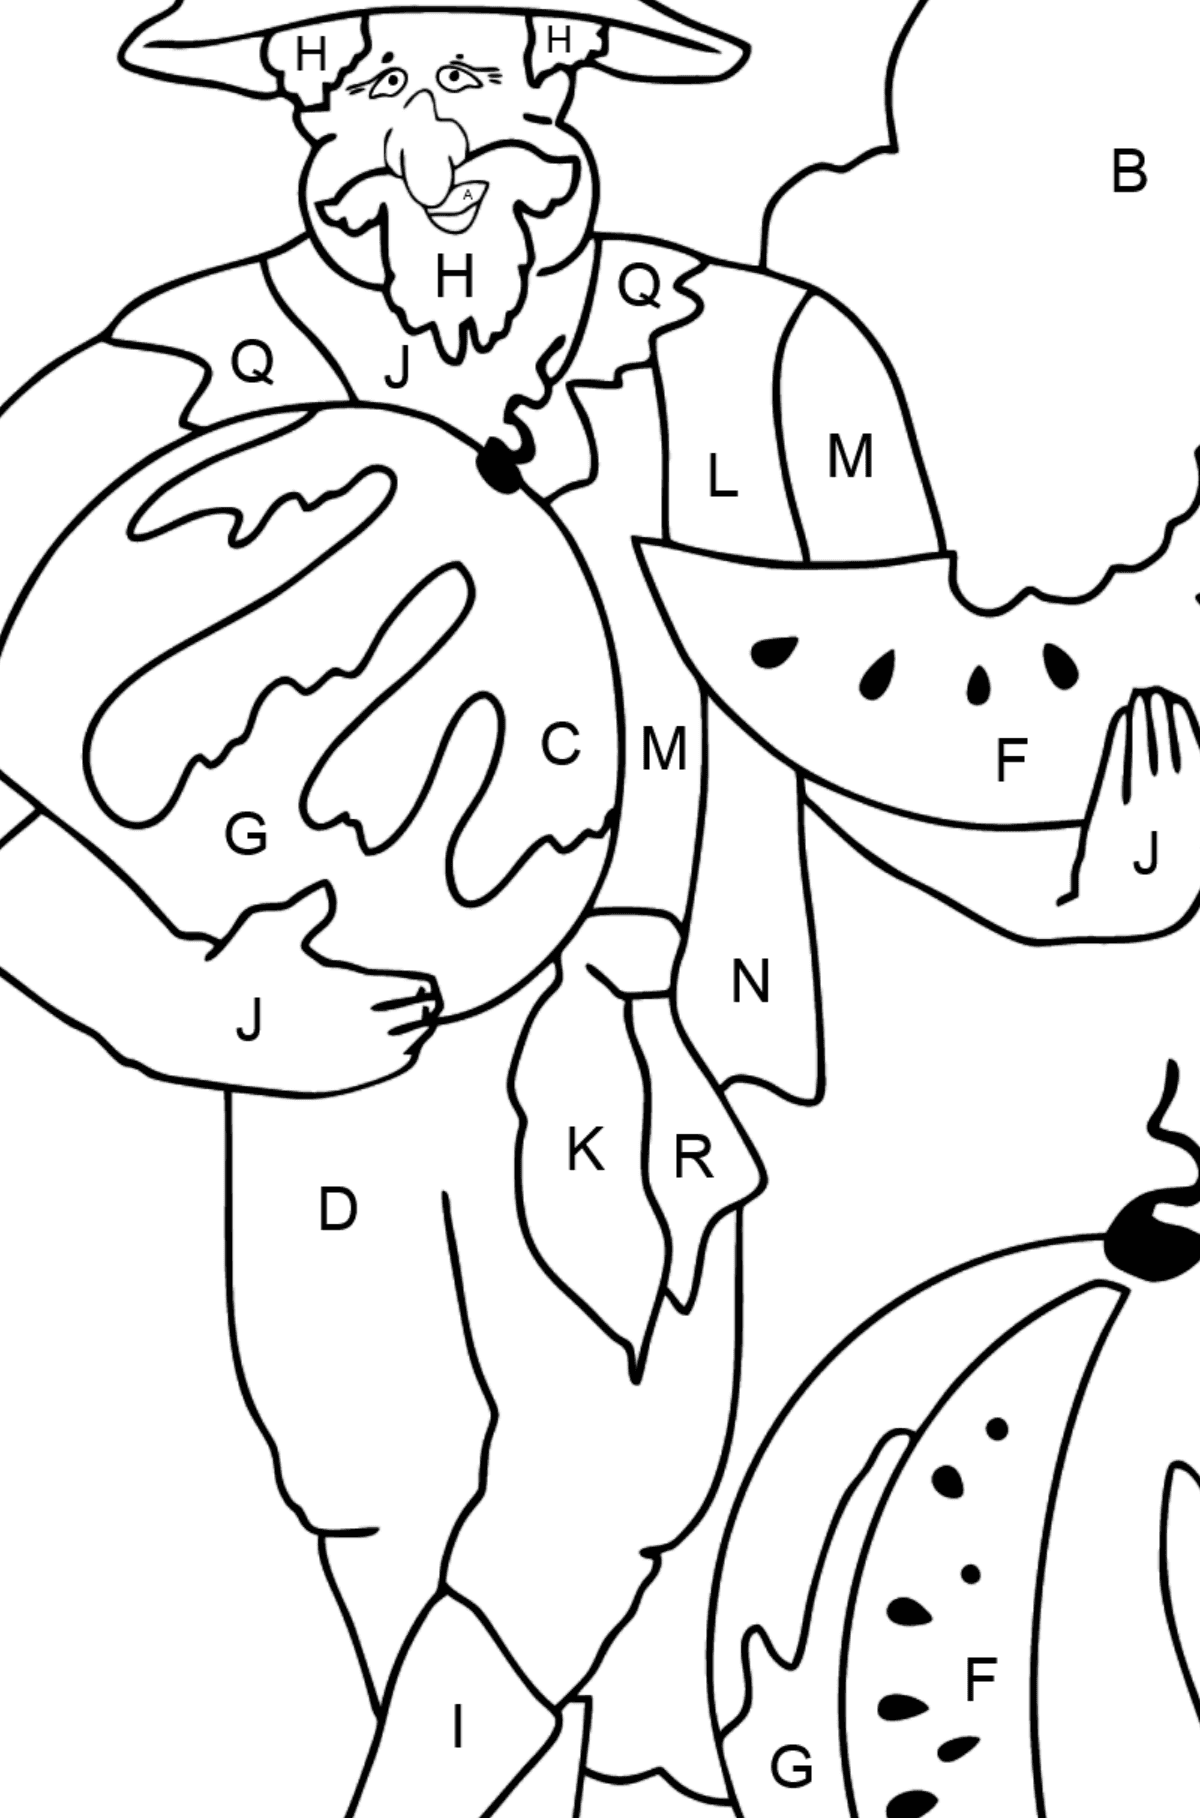 Coloring Page - A Pirate with a Watermelon - Coloring by Letters for Kids